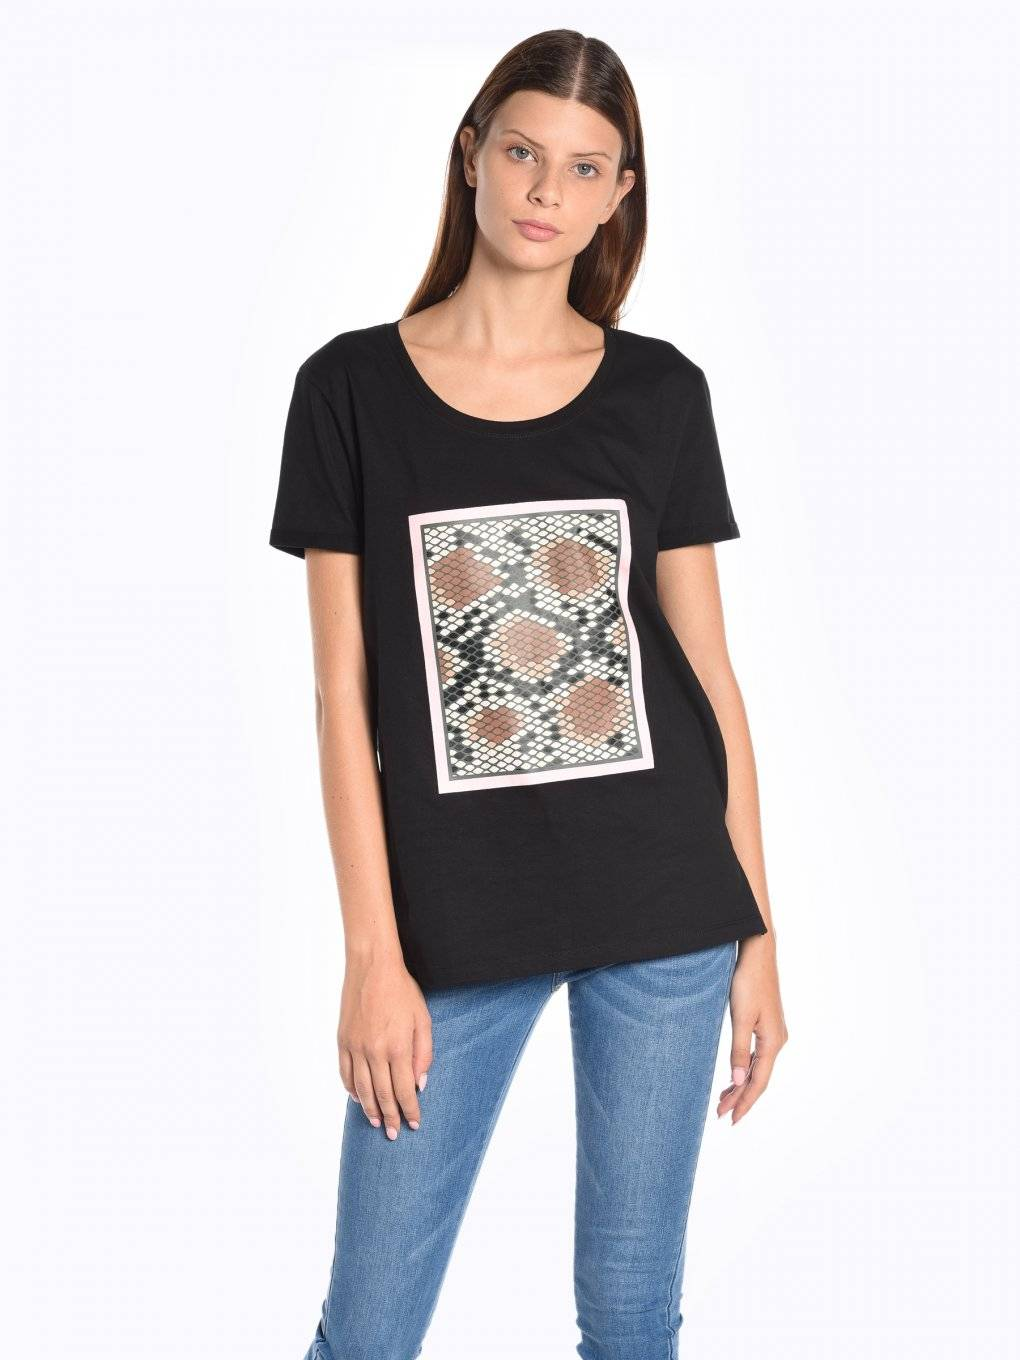 T-shirt with animal print